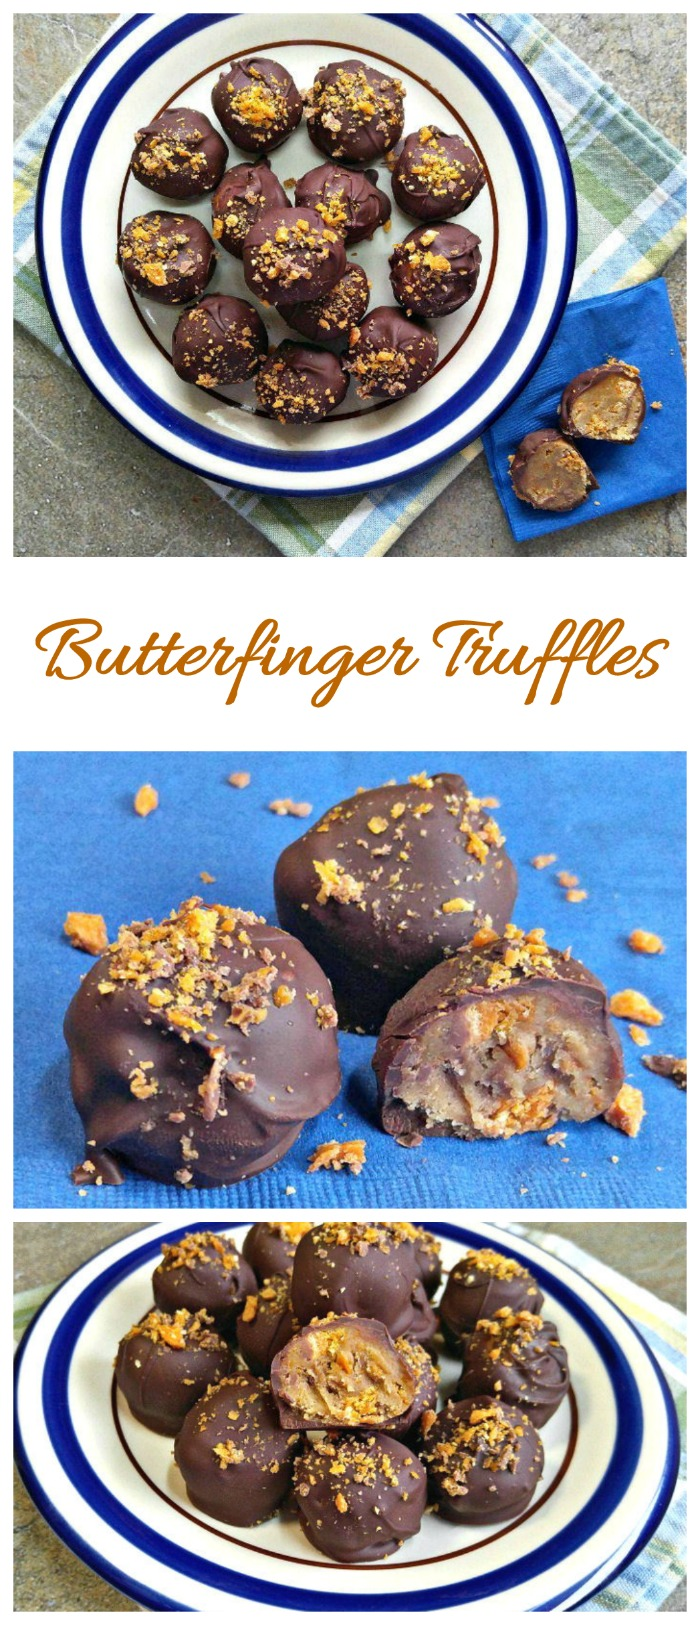 These Butterfinger truffles are creamy and crumchy